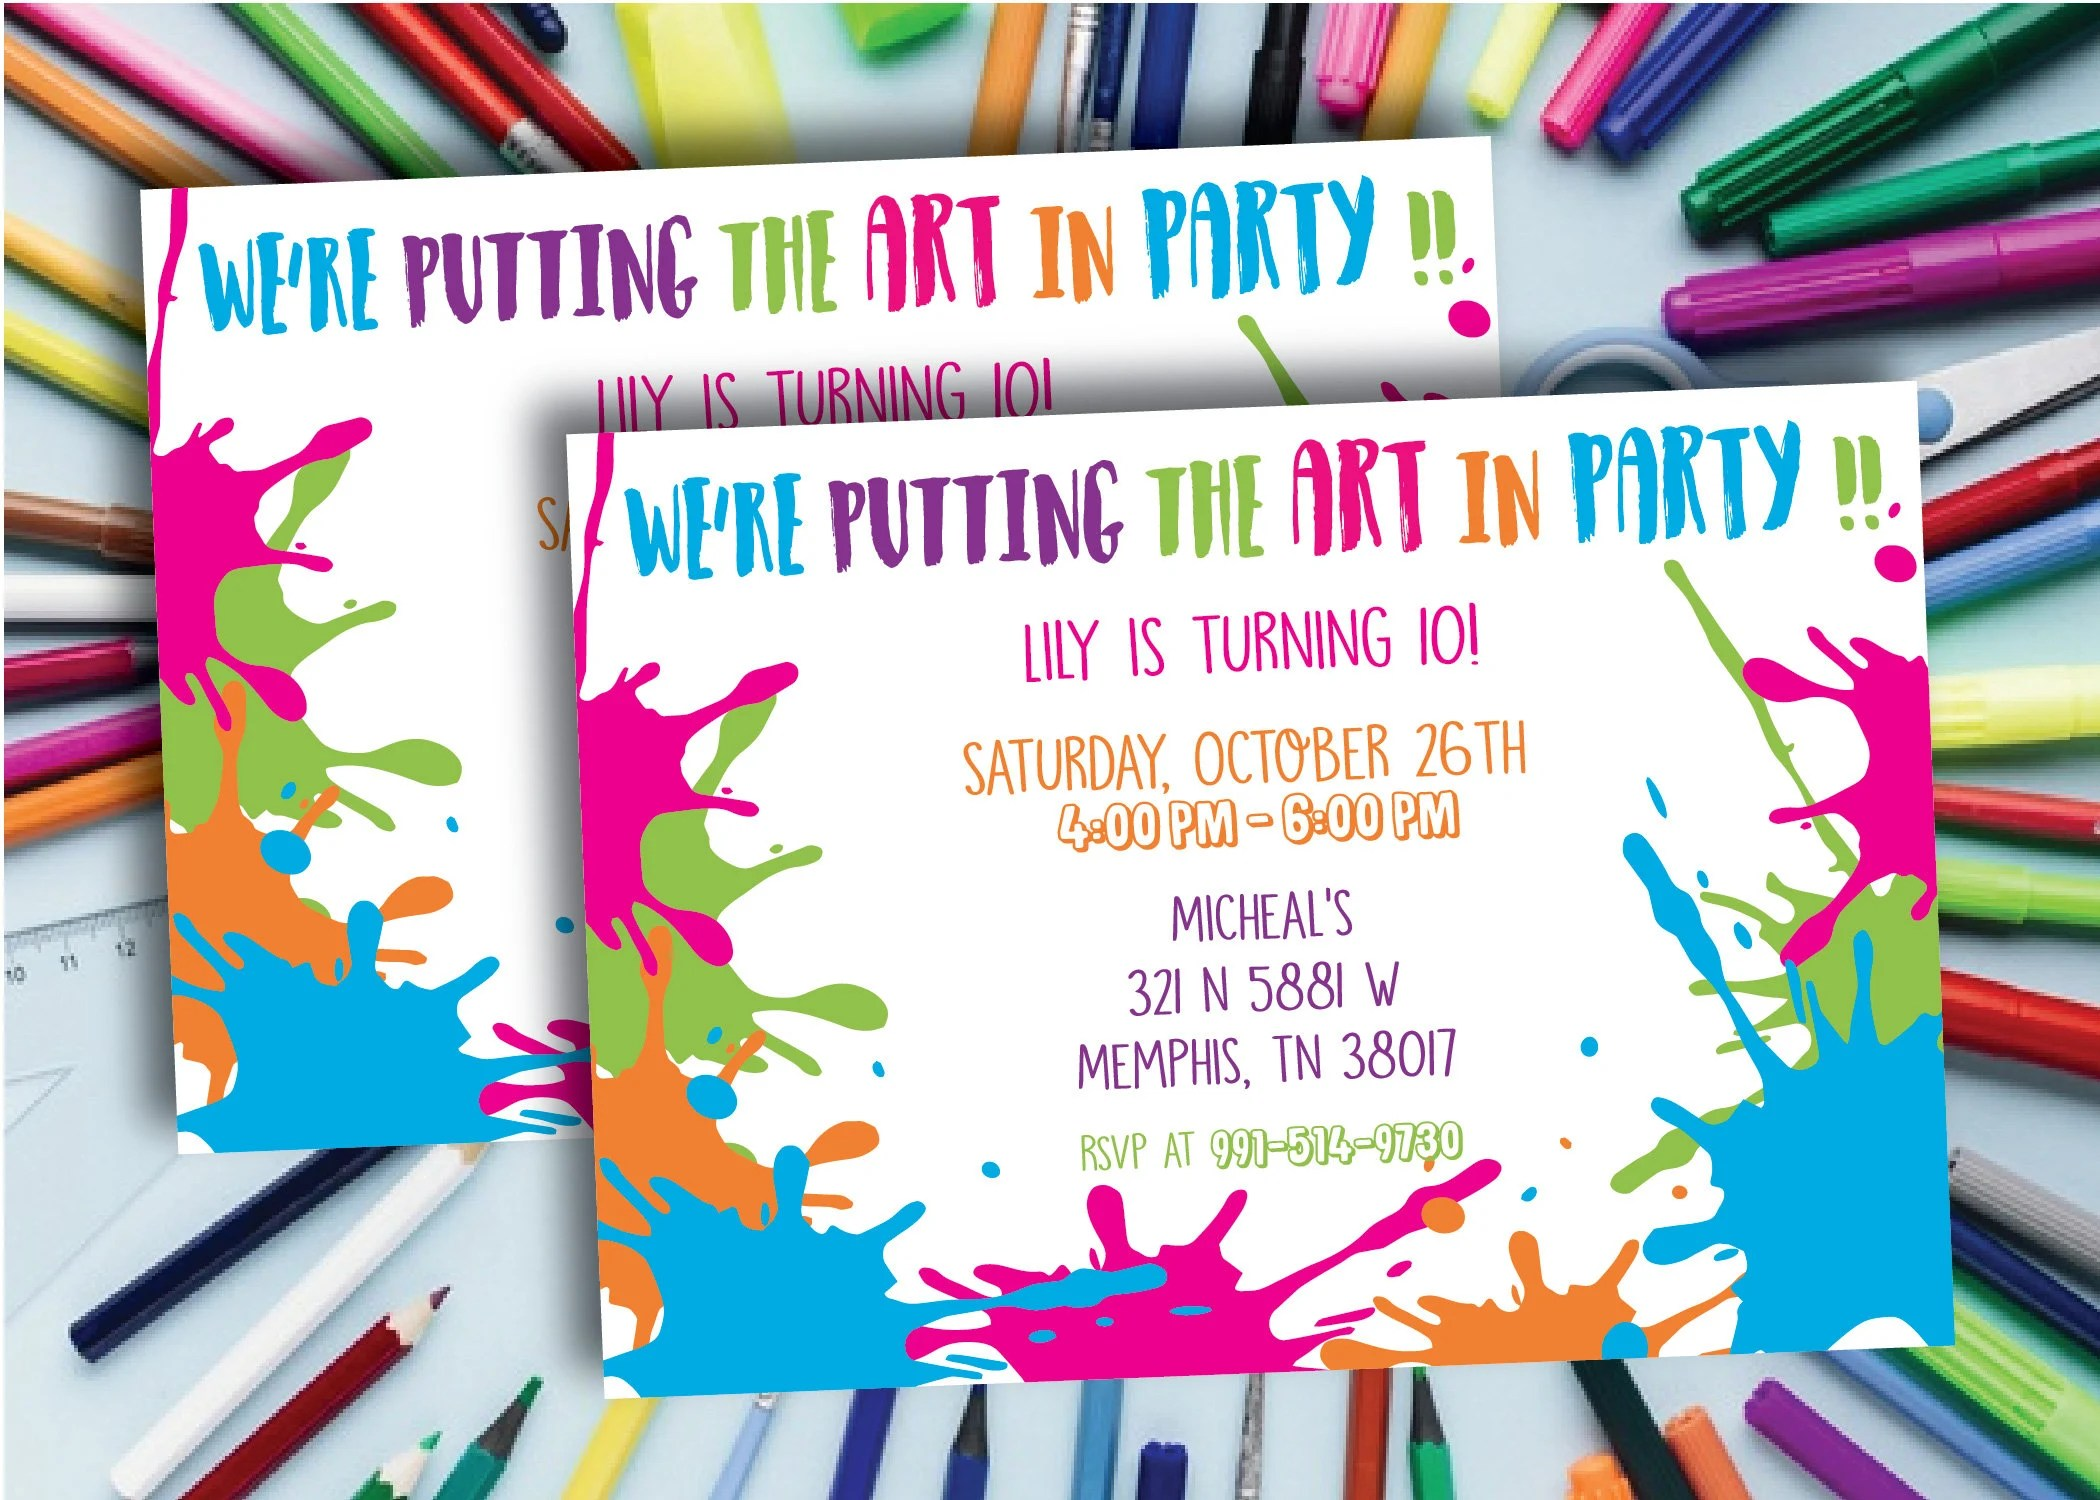 art party invitation paint invitation art birthday party invite 10 year old painting party art invitation download